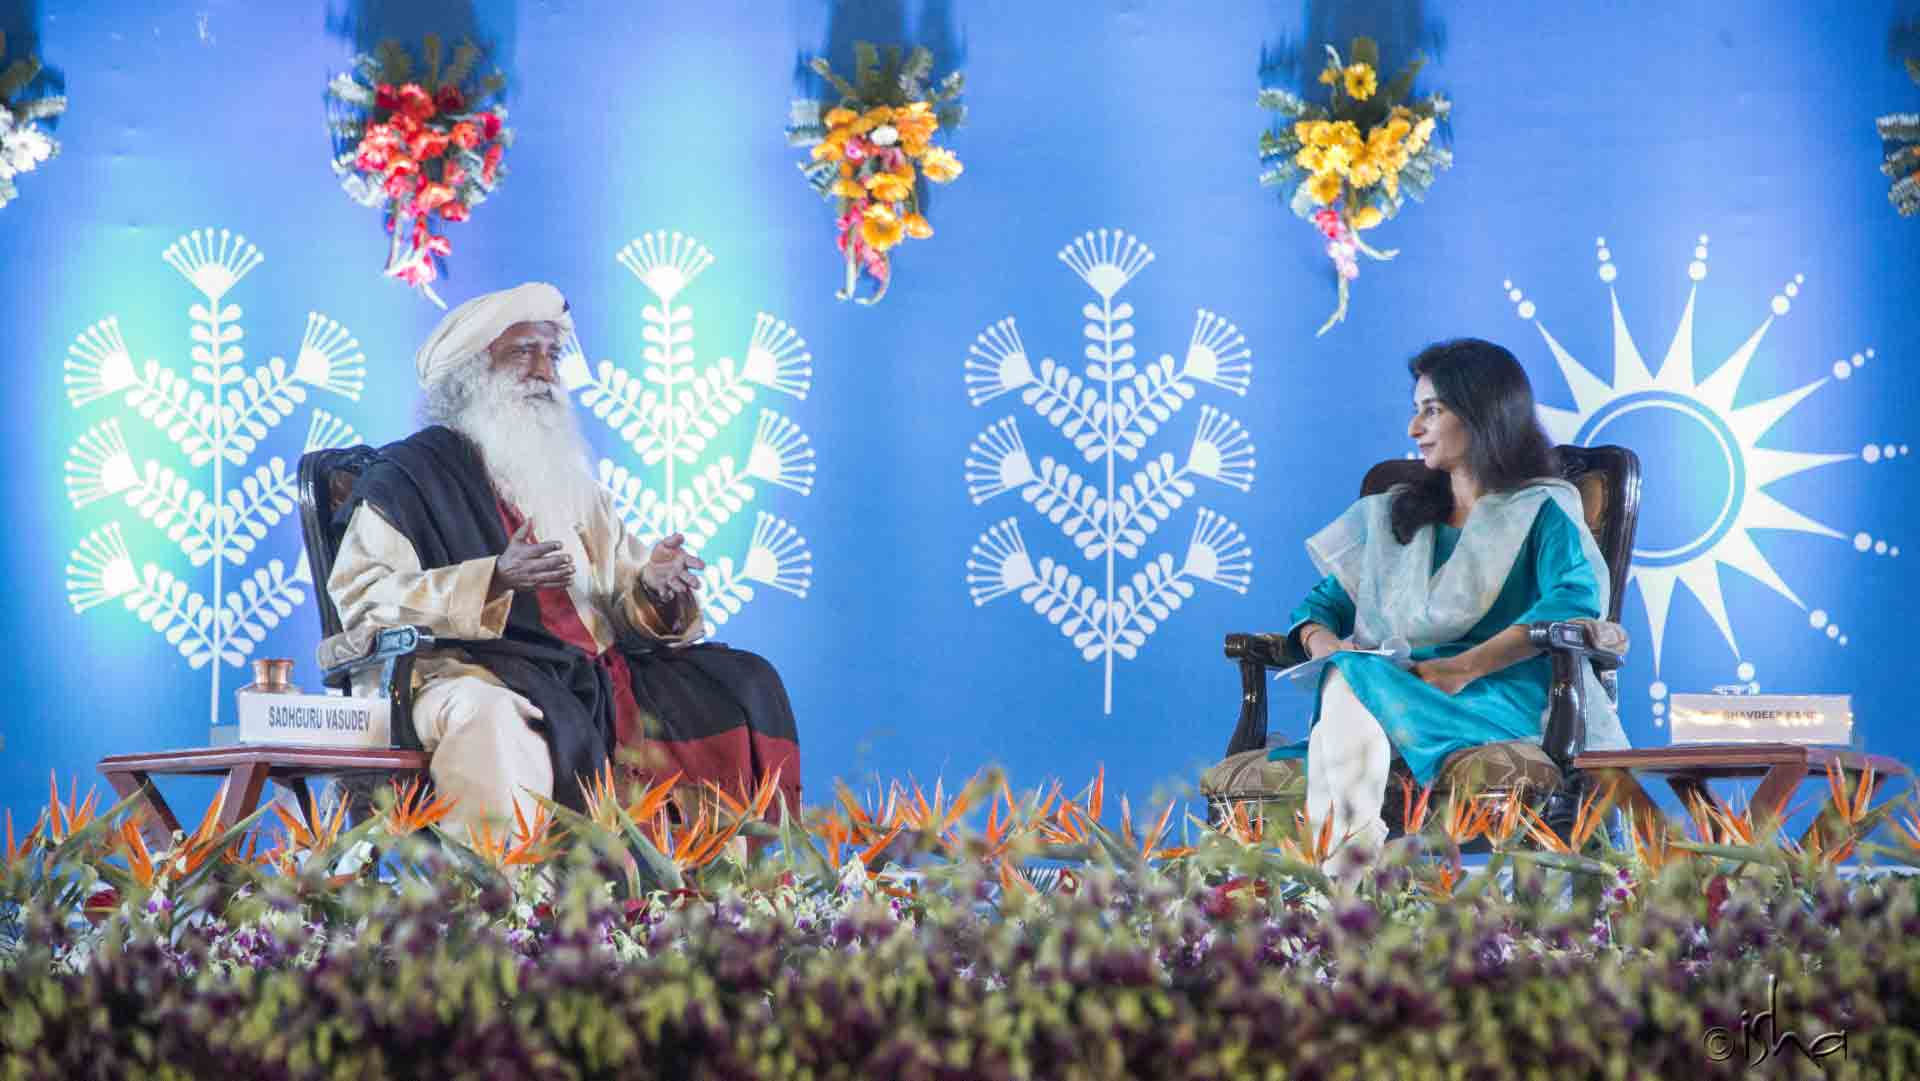 Journalist Bhavdeep Kang in conversation with Sadhguru at the International Conference on Living the Right Way, Simhastha 2016, Ujjain, Madhya Pradesh